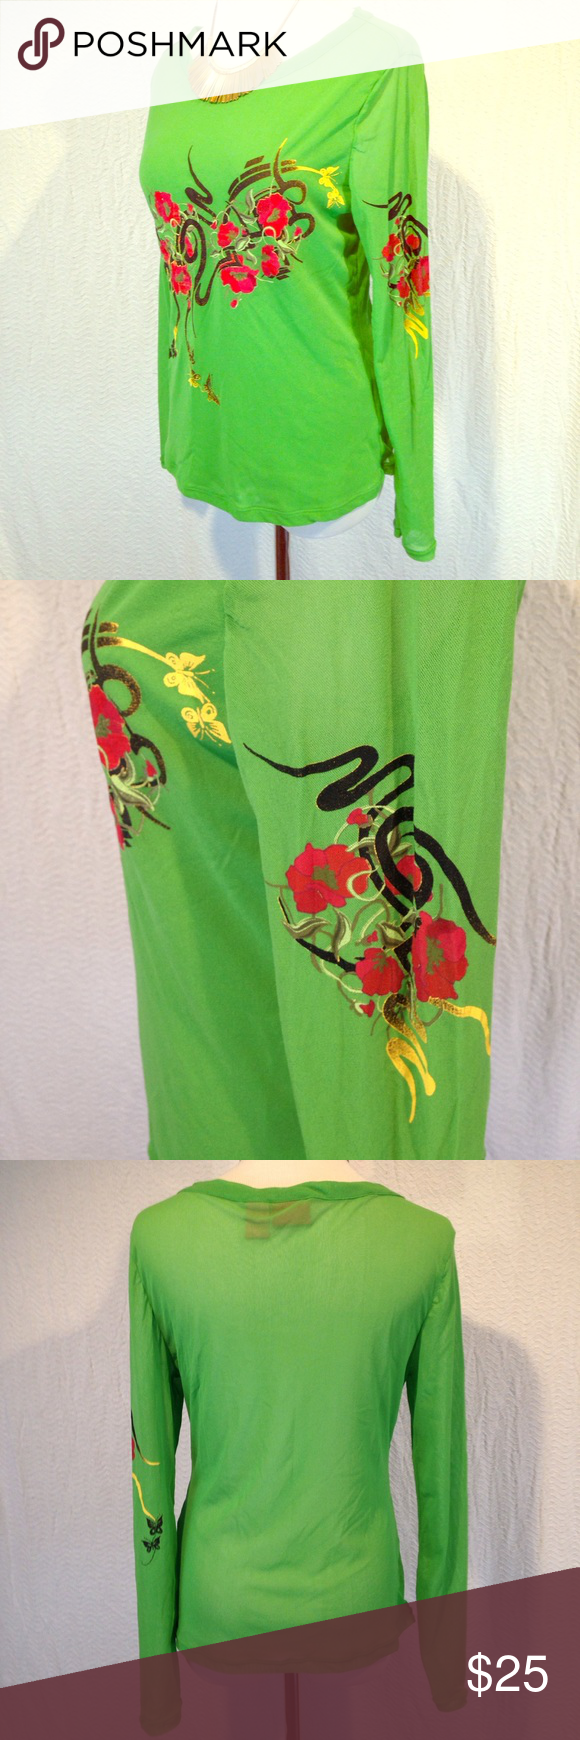 Size large vintage Asian inspired mesh green shirt This vintage size large mesh long sleeve green shirt is in excellent used condition. Has Asian inspired design on the front and left sleeve. Funky and bold look. Is one layer of mesh on the back and two layers of mesh on the front. Looks great over top of a swimsuit or a crop top underneath. Please see photos. Please ask any questions before purchasing. Vintage Tops Tees - Long Sleeve